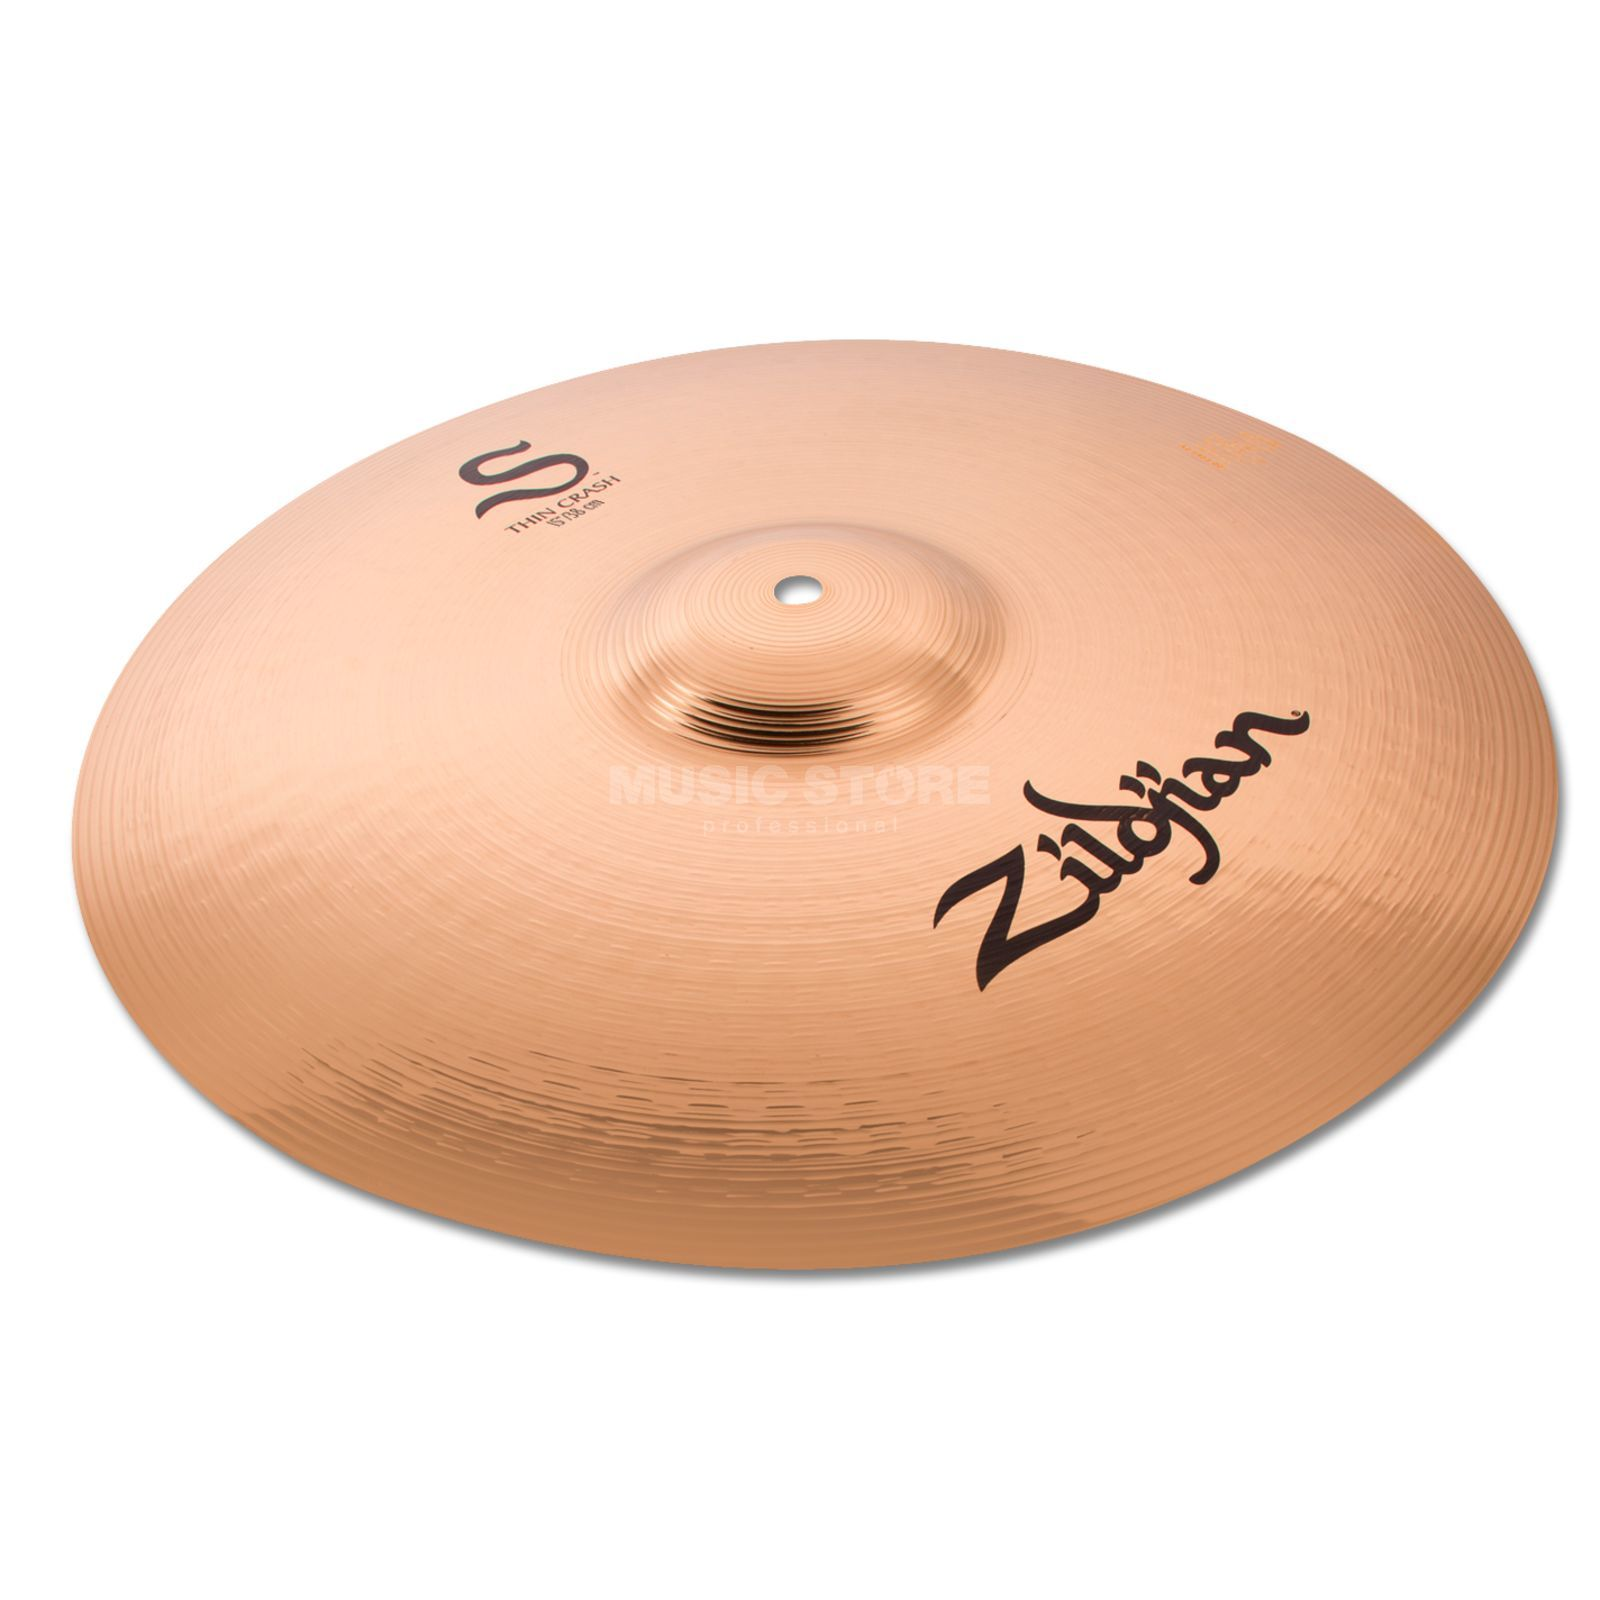 "Zildjian S-Series Thin Crash 15"" Brilliant Produktbild"